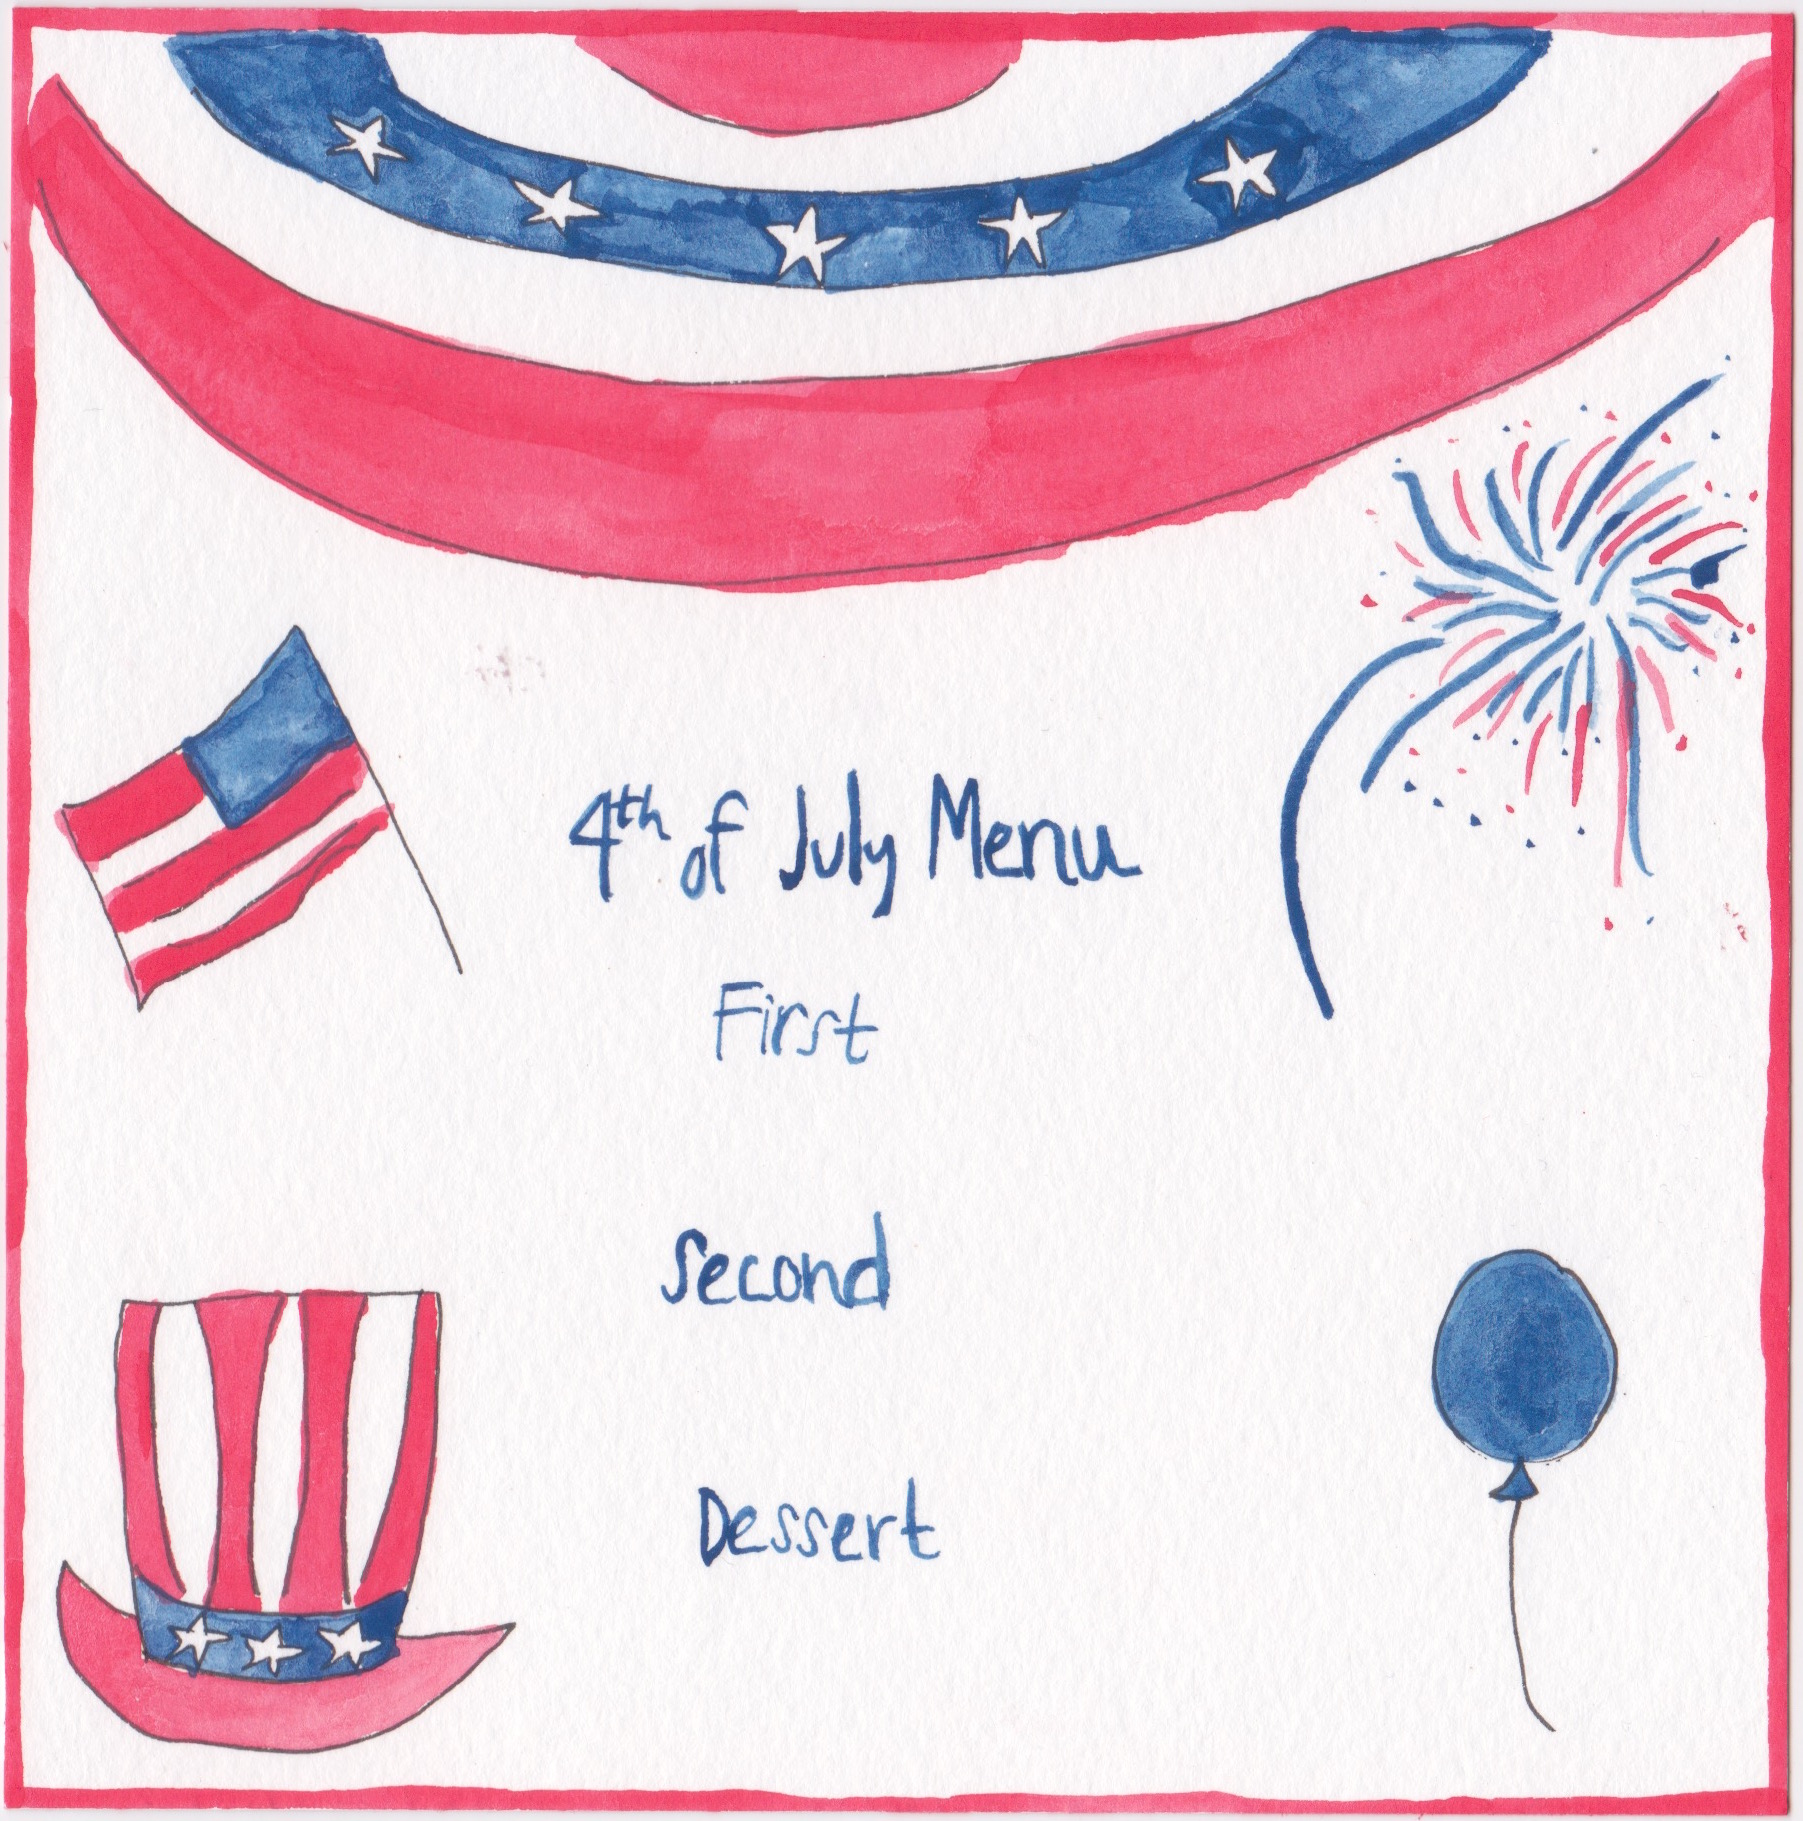 Chefanie how to throw a fire cracking fourth of july f te for 4th of july menu template